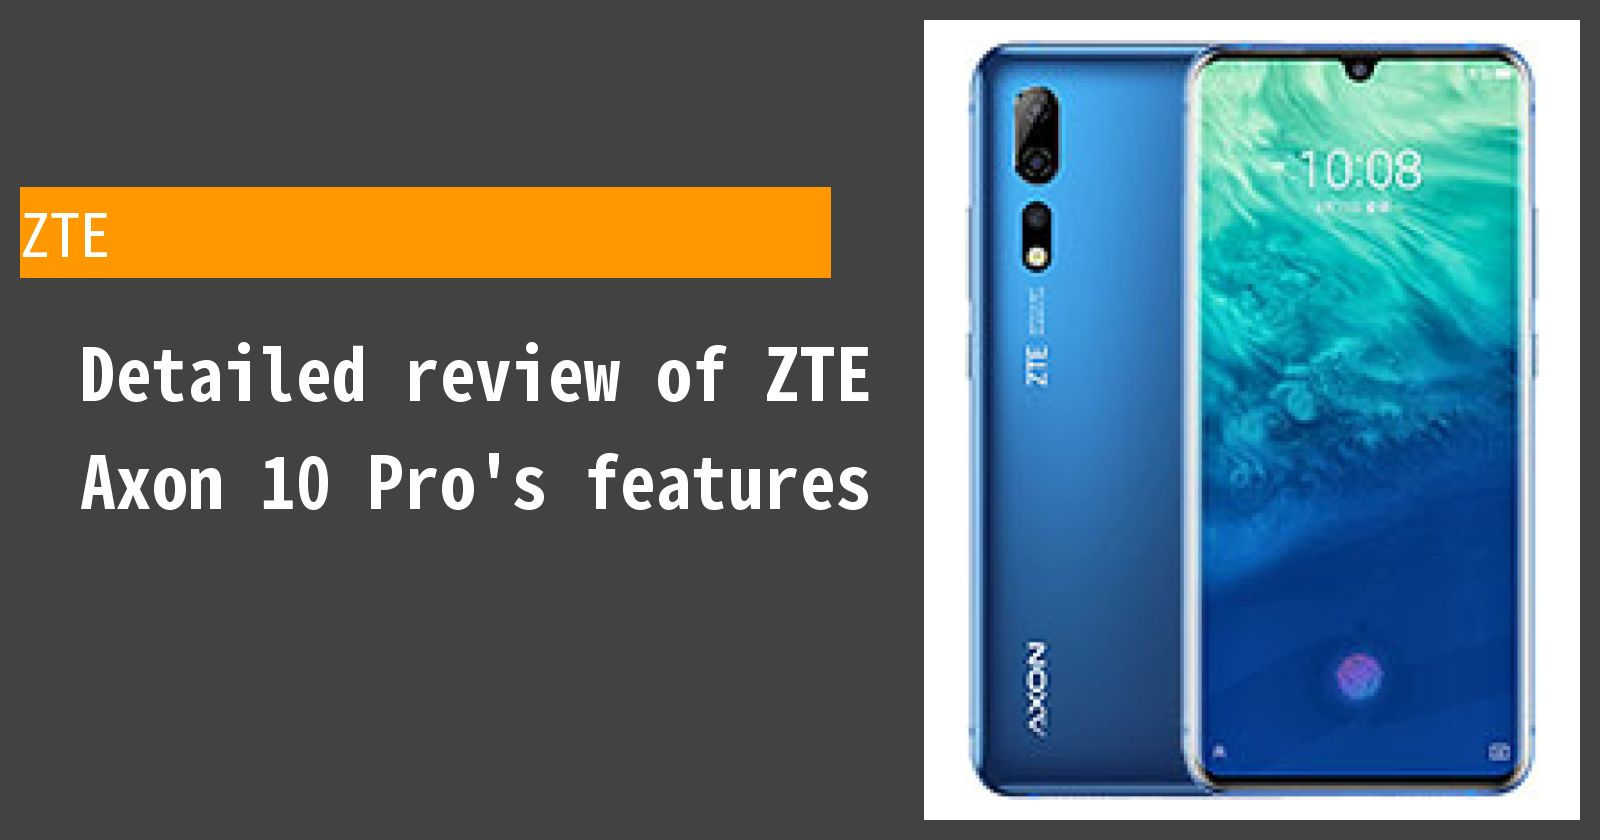 Detailed review of ZTE Axon 10 Pro's features